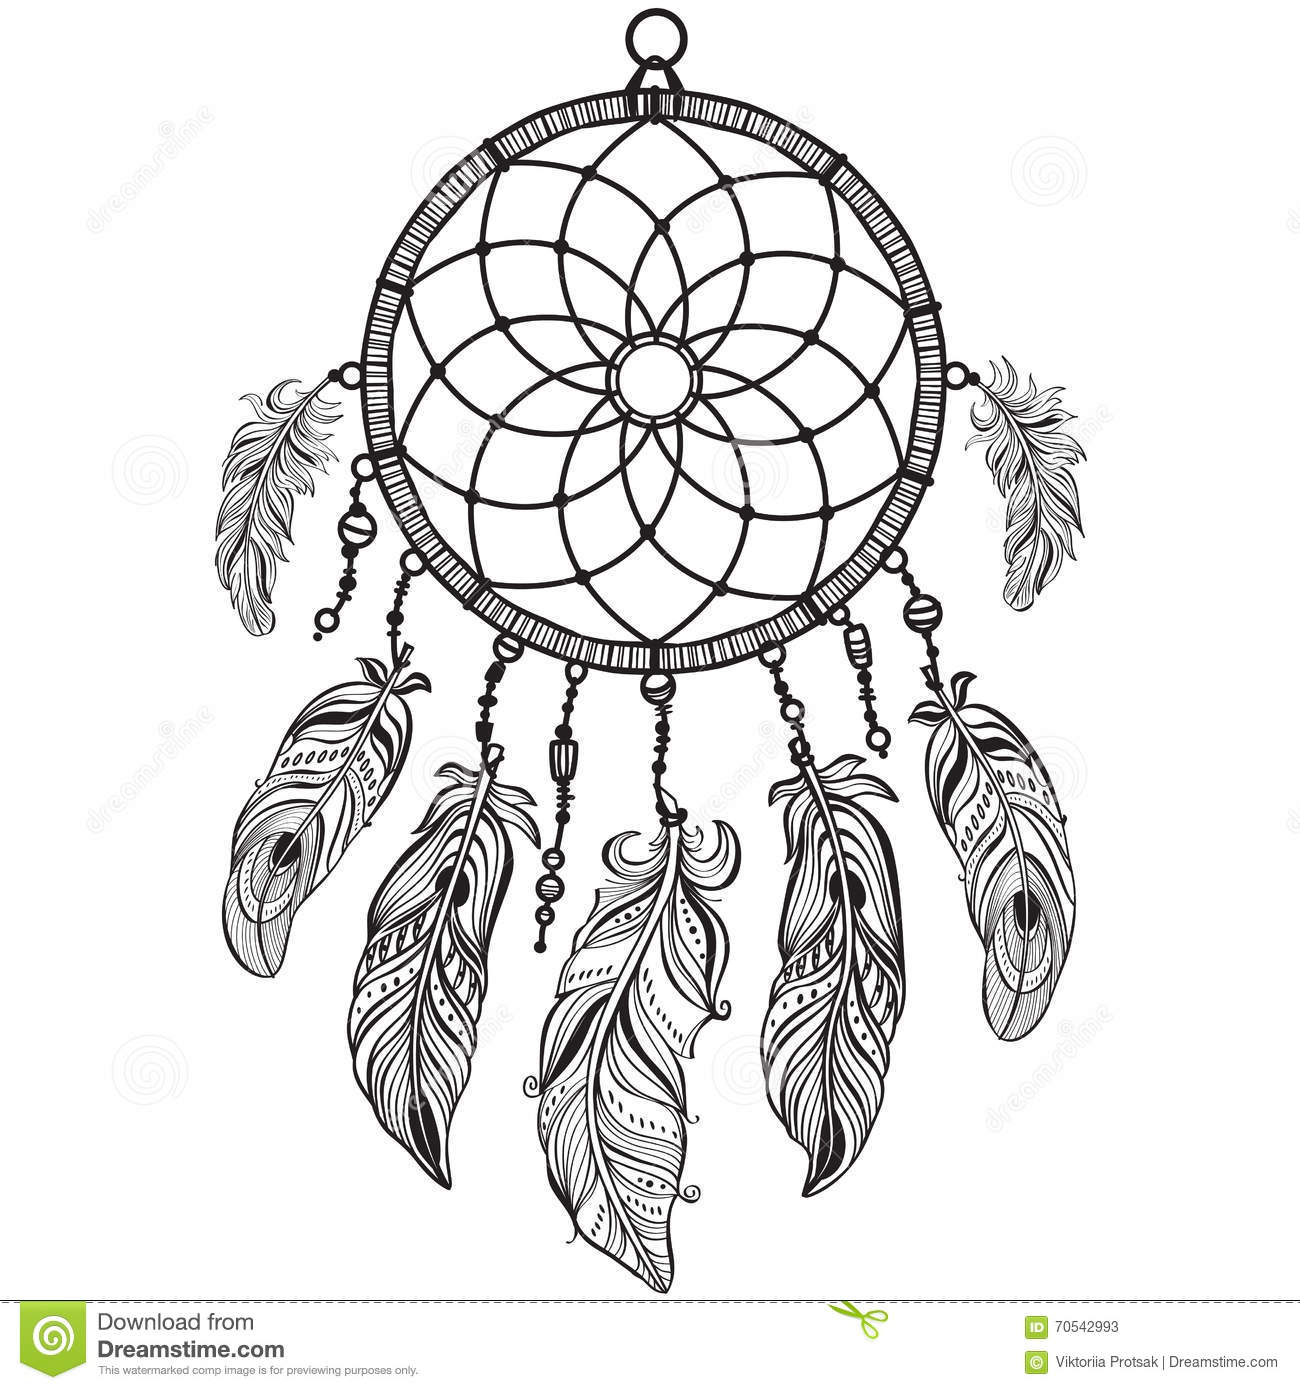 28299dbe9 Native American Indian Talisman Dreamcatcher Stock Vector ...